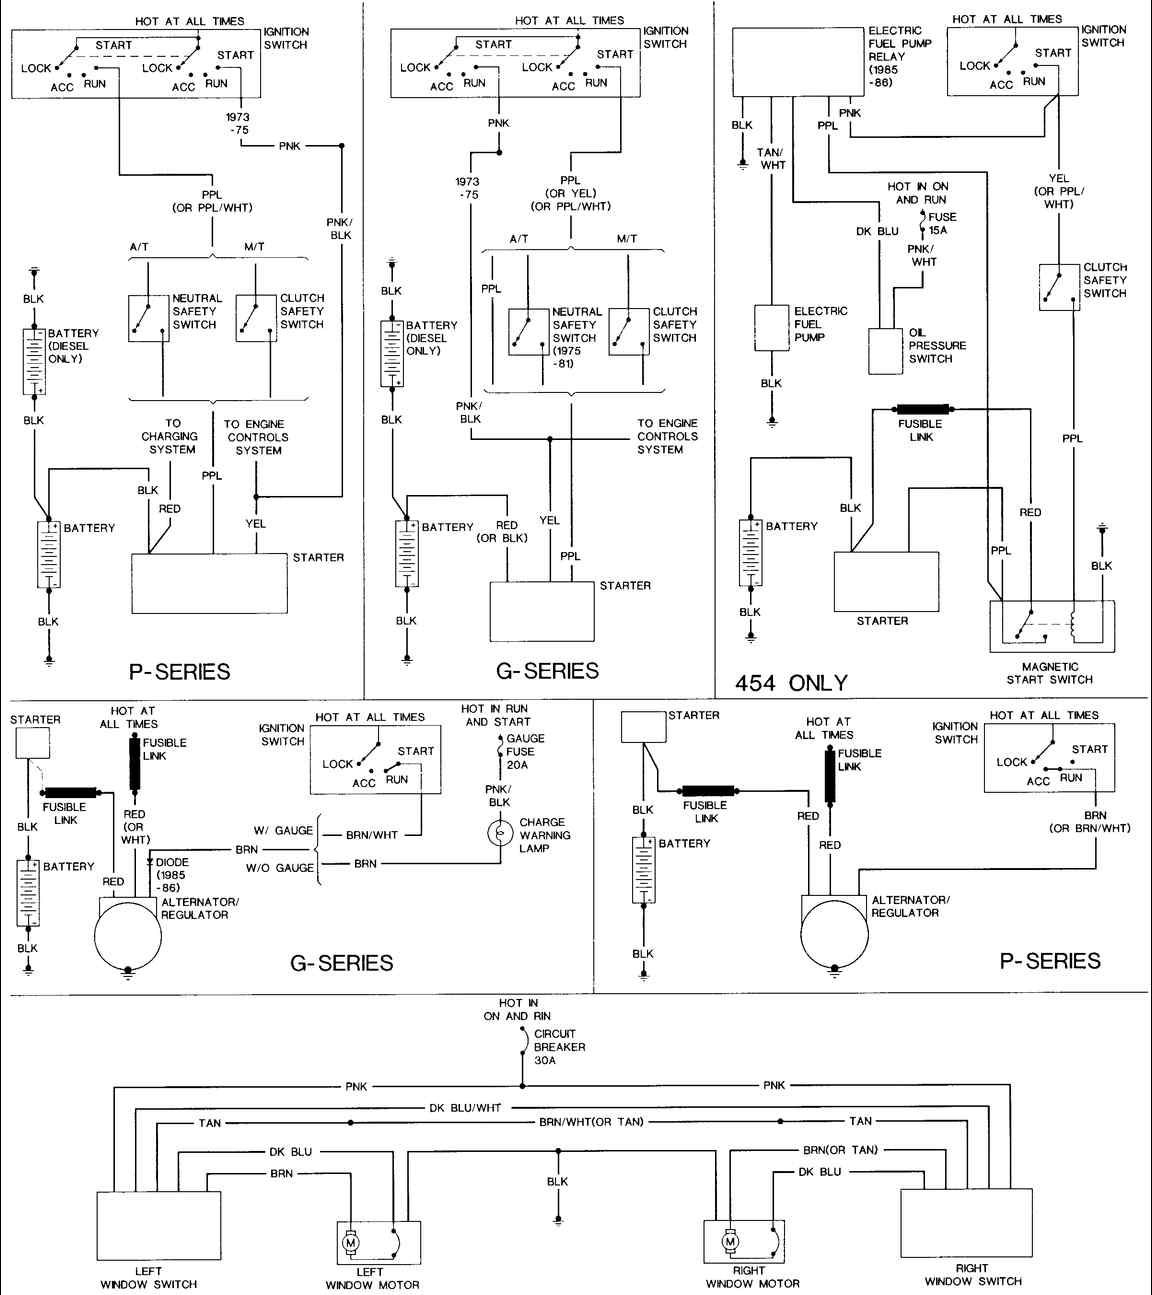 0c73623a181dc376dbb4777e2029d285 85 chevy truck wiring diagram 85 chevy van the steering column 1985 chevy truck wiring diagram at creativeand.co